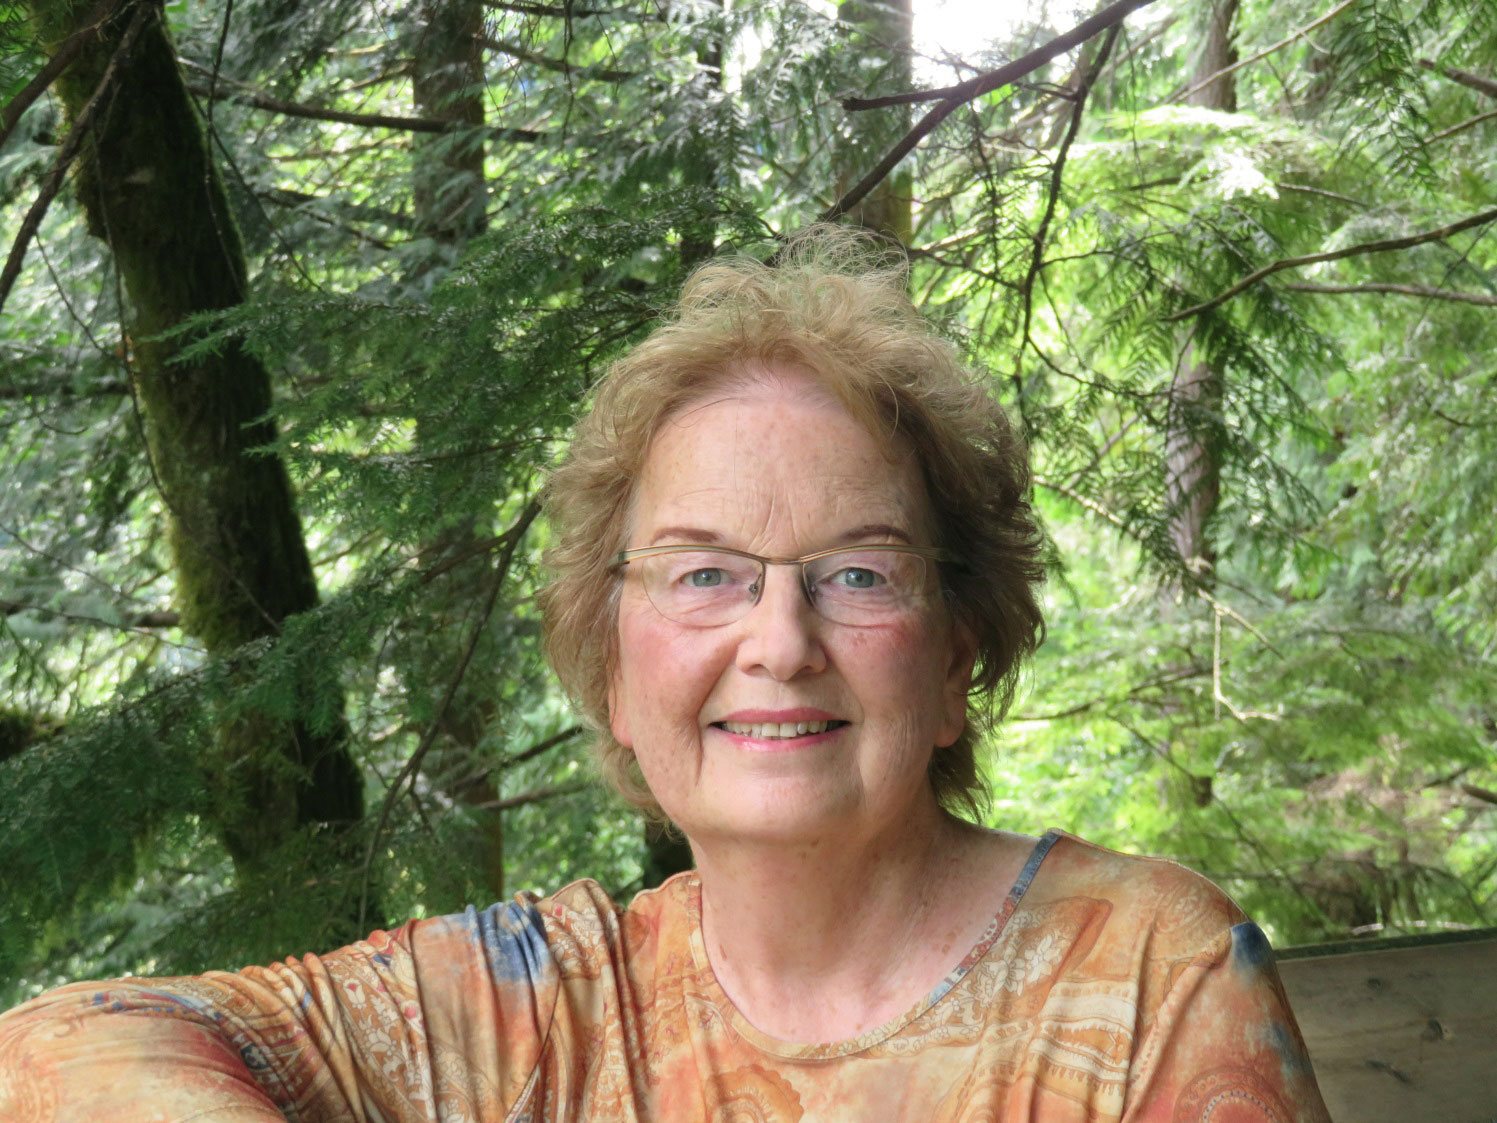 Author and artist Susan Milner